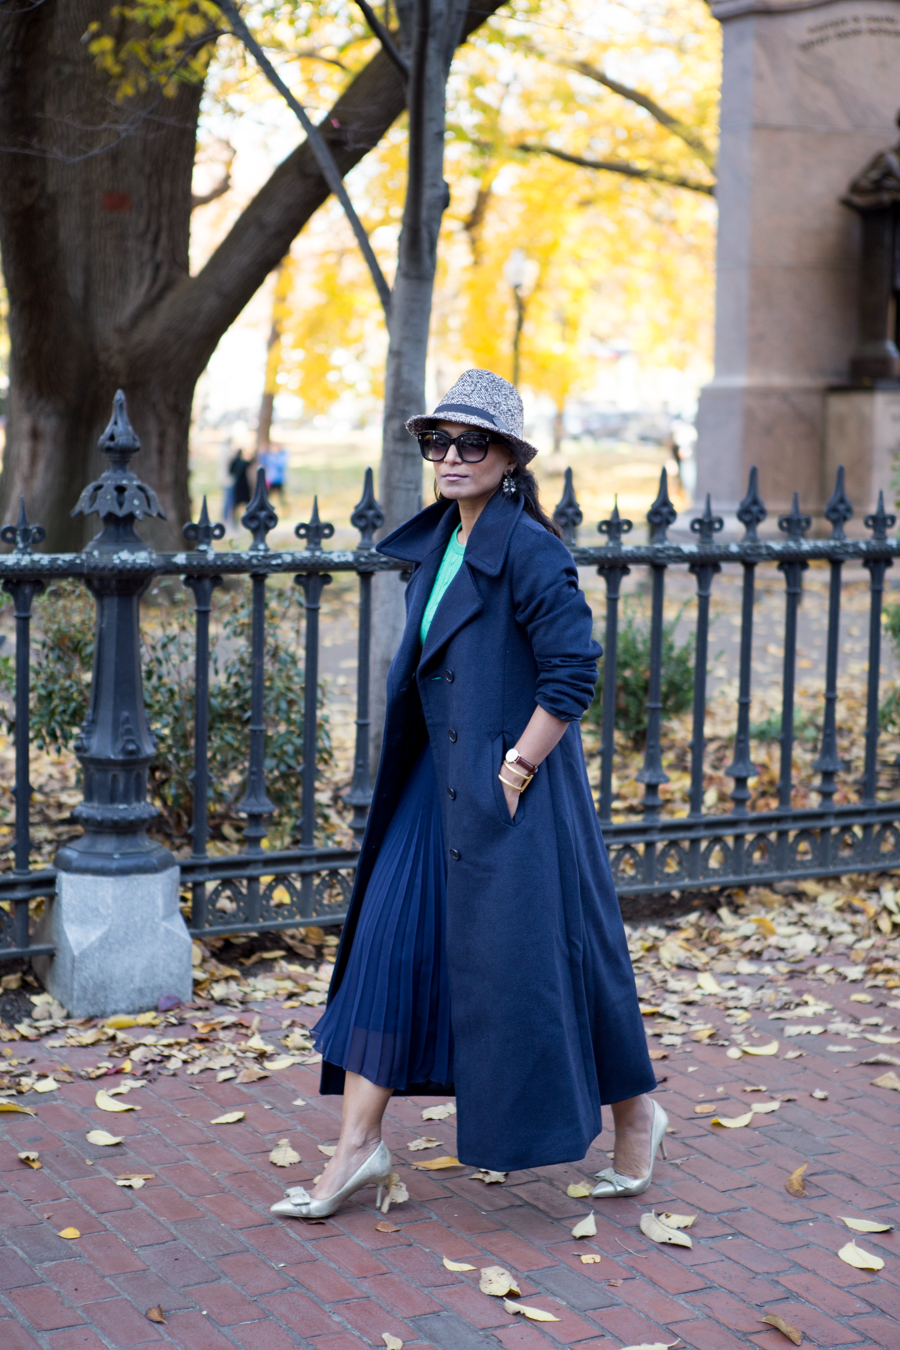 fall fashion, winter style, petite fashion, petite sweaters, jewel tones, colorful, feminine style, petite style, classic style, bows, vibrant colors, work style, long coat, navy coat, forever 21, zara, nordstrom, target style, outerwear, womens fashion, fashion over 40